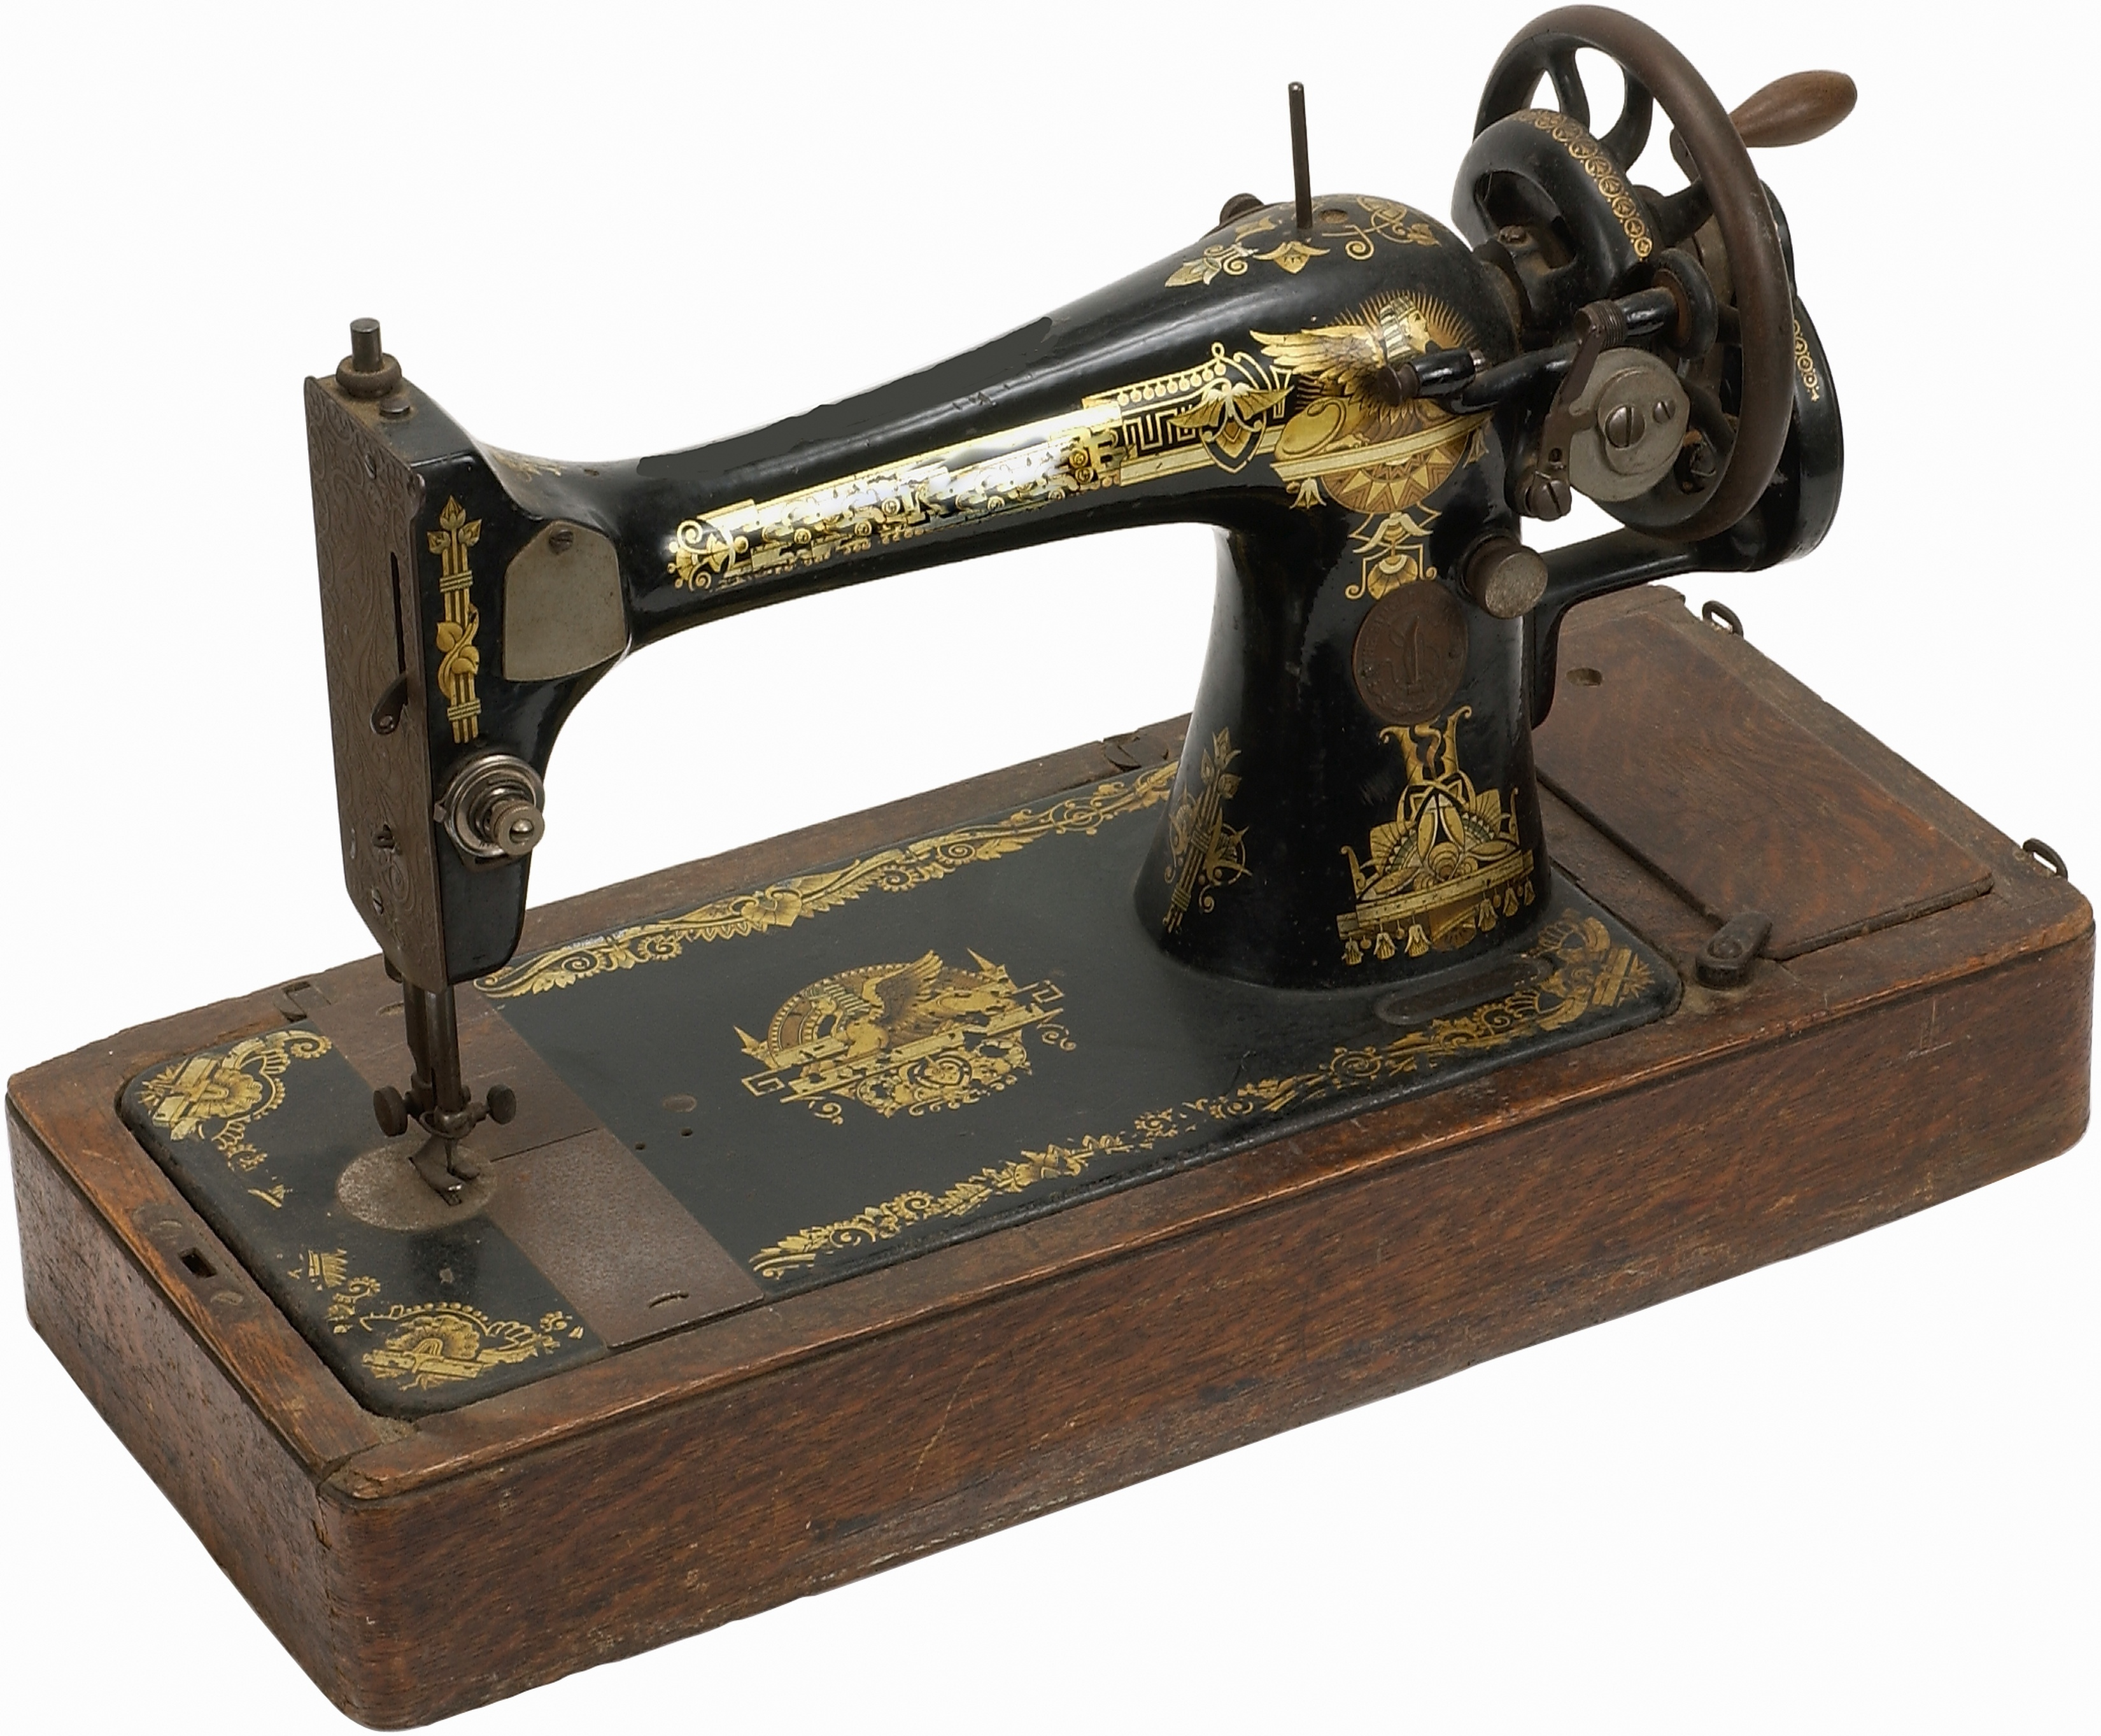 How Do I Find Out How Much an Old Sewing Machine Is Worth ...